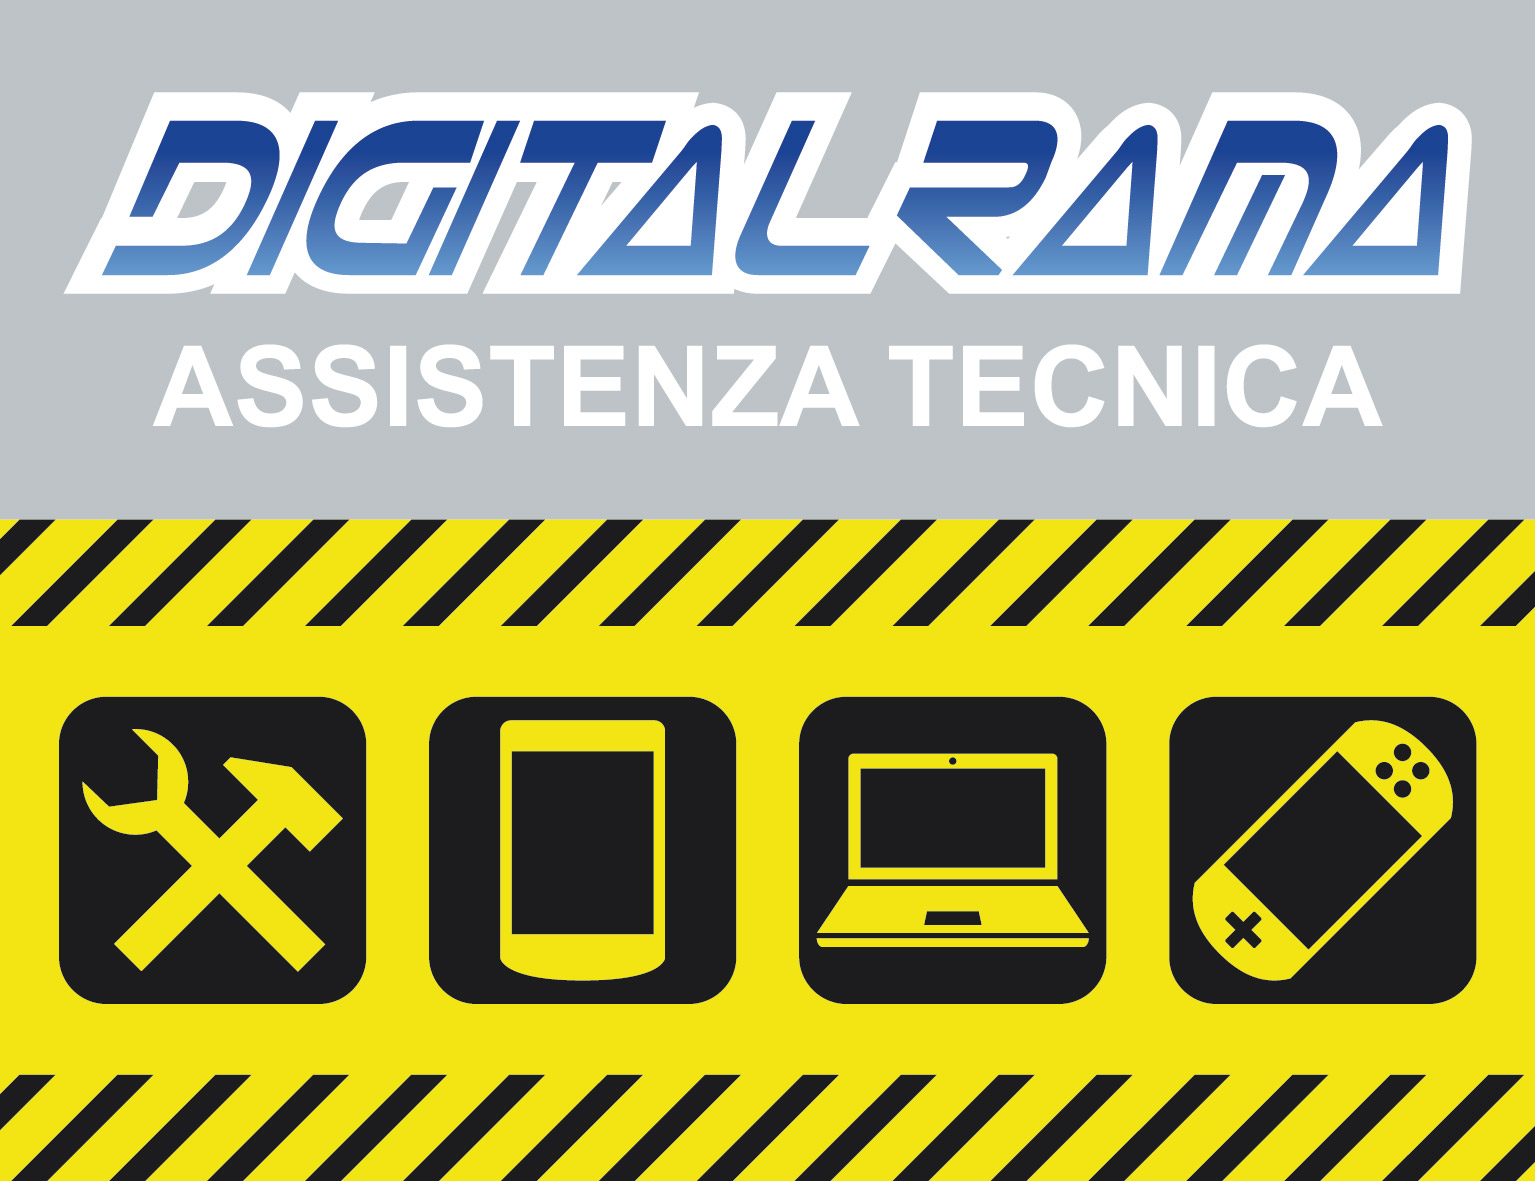 Digitalrama